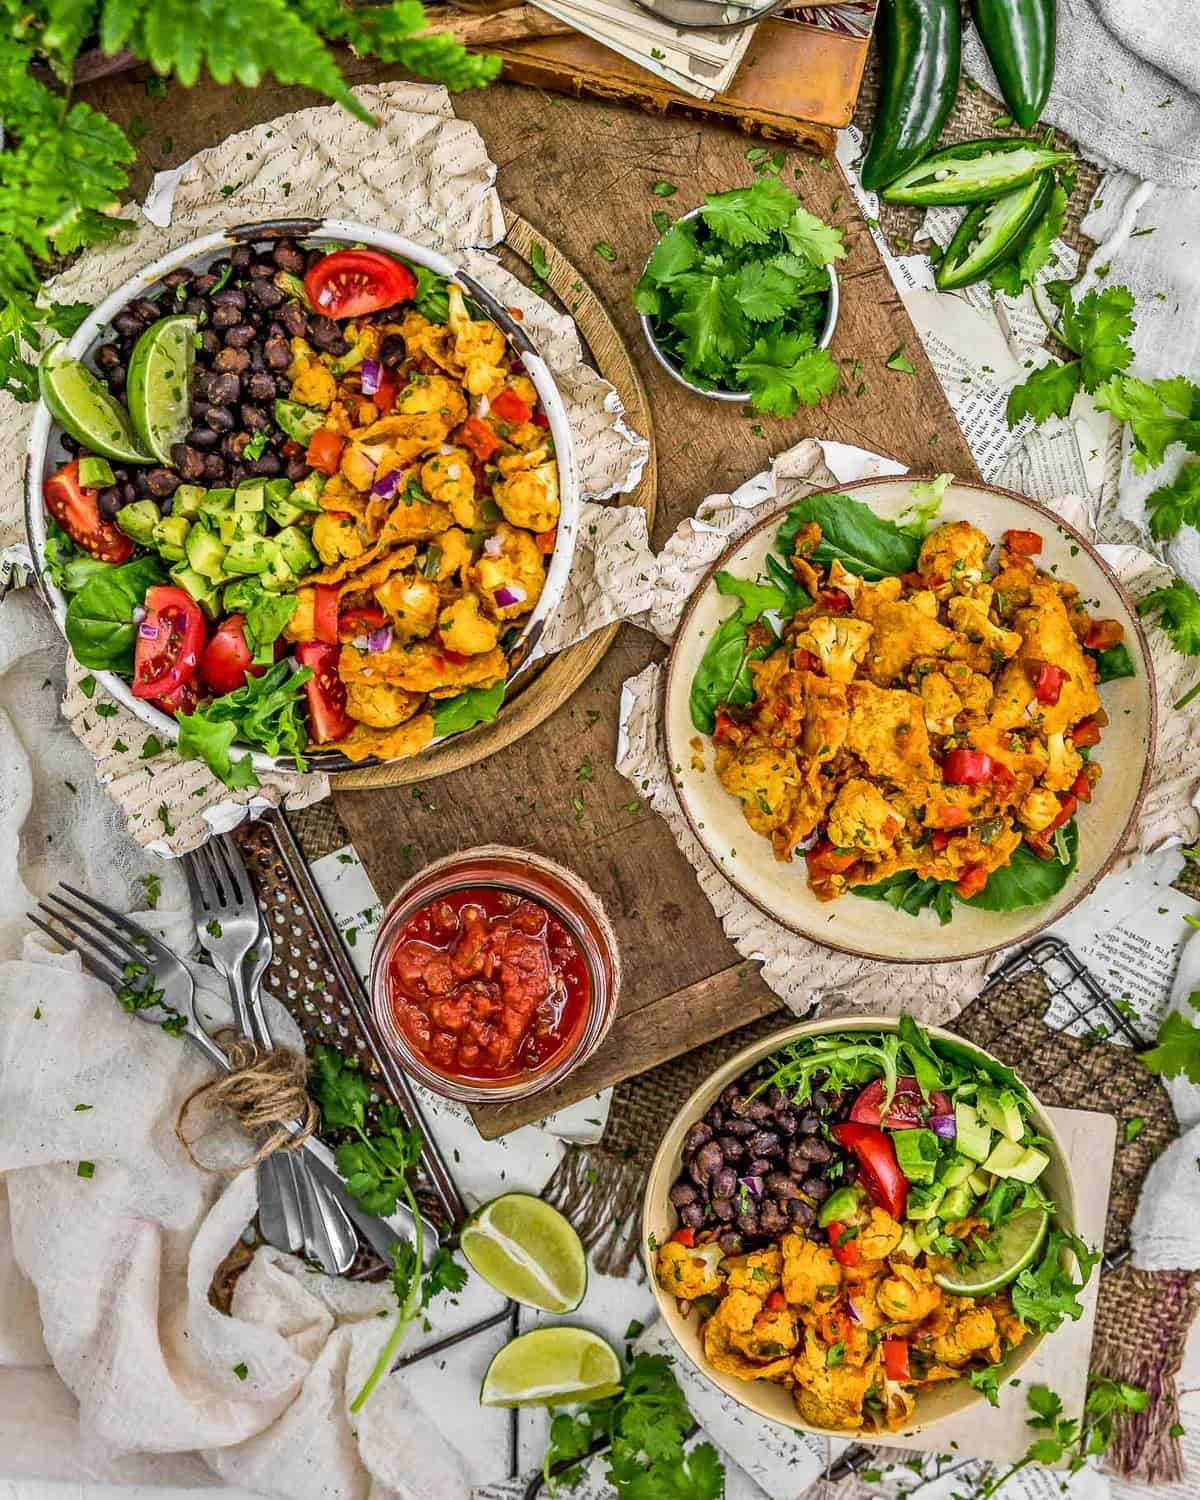 Tablescape of Vegan Cauliflower Migas